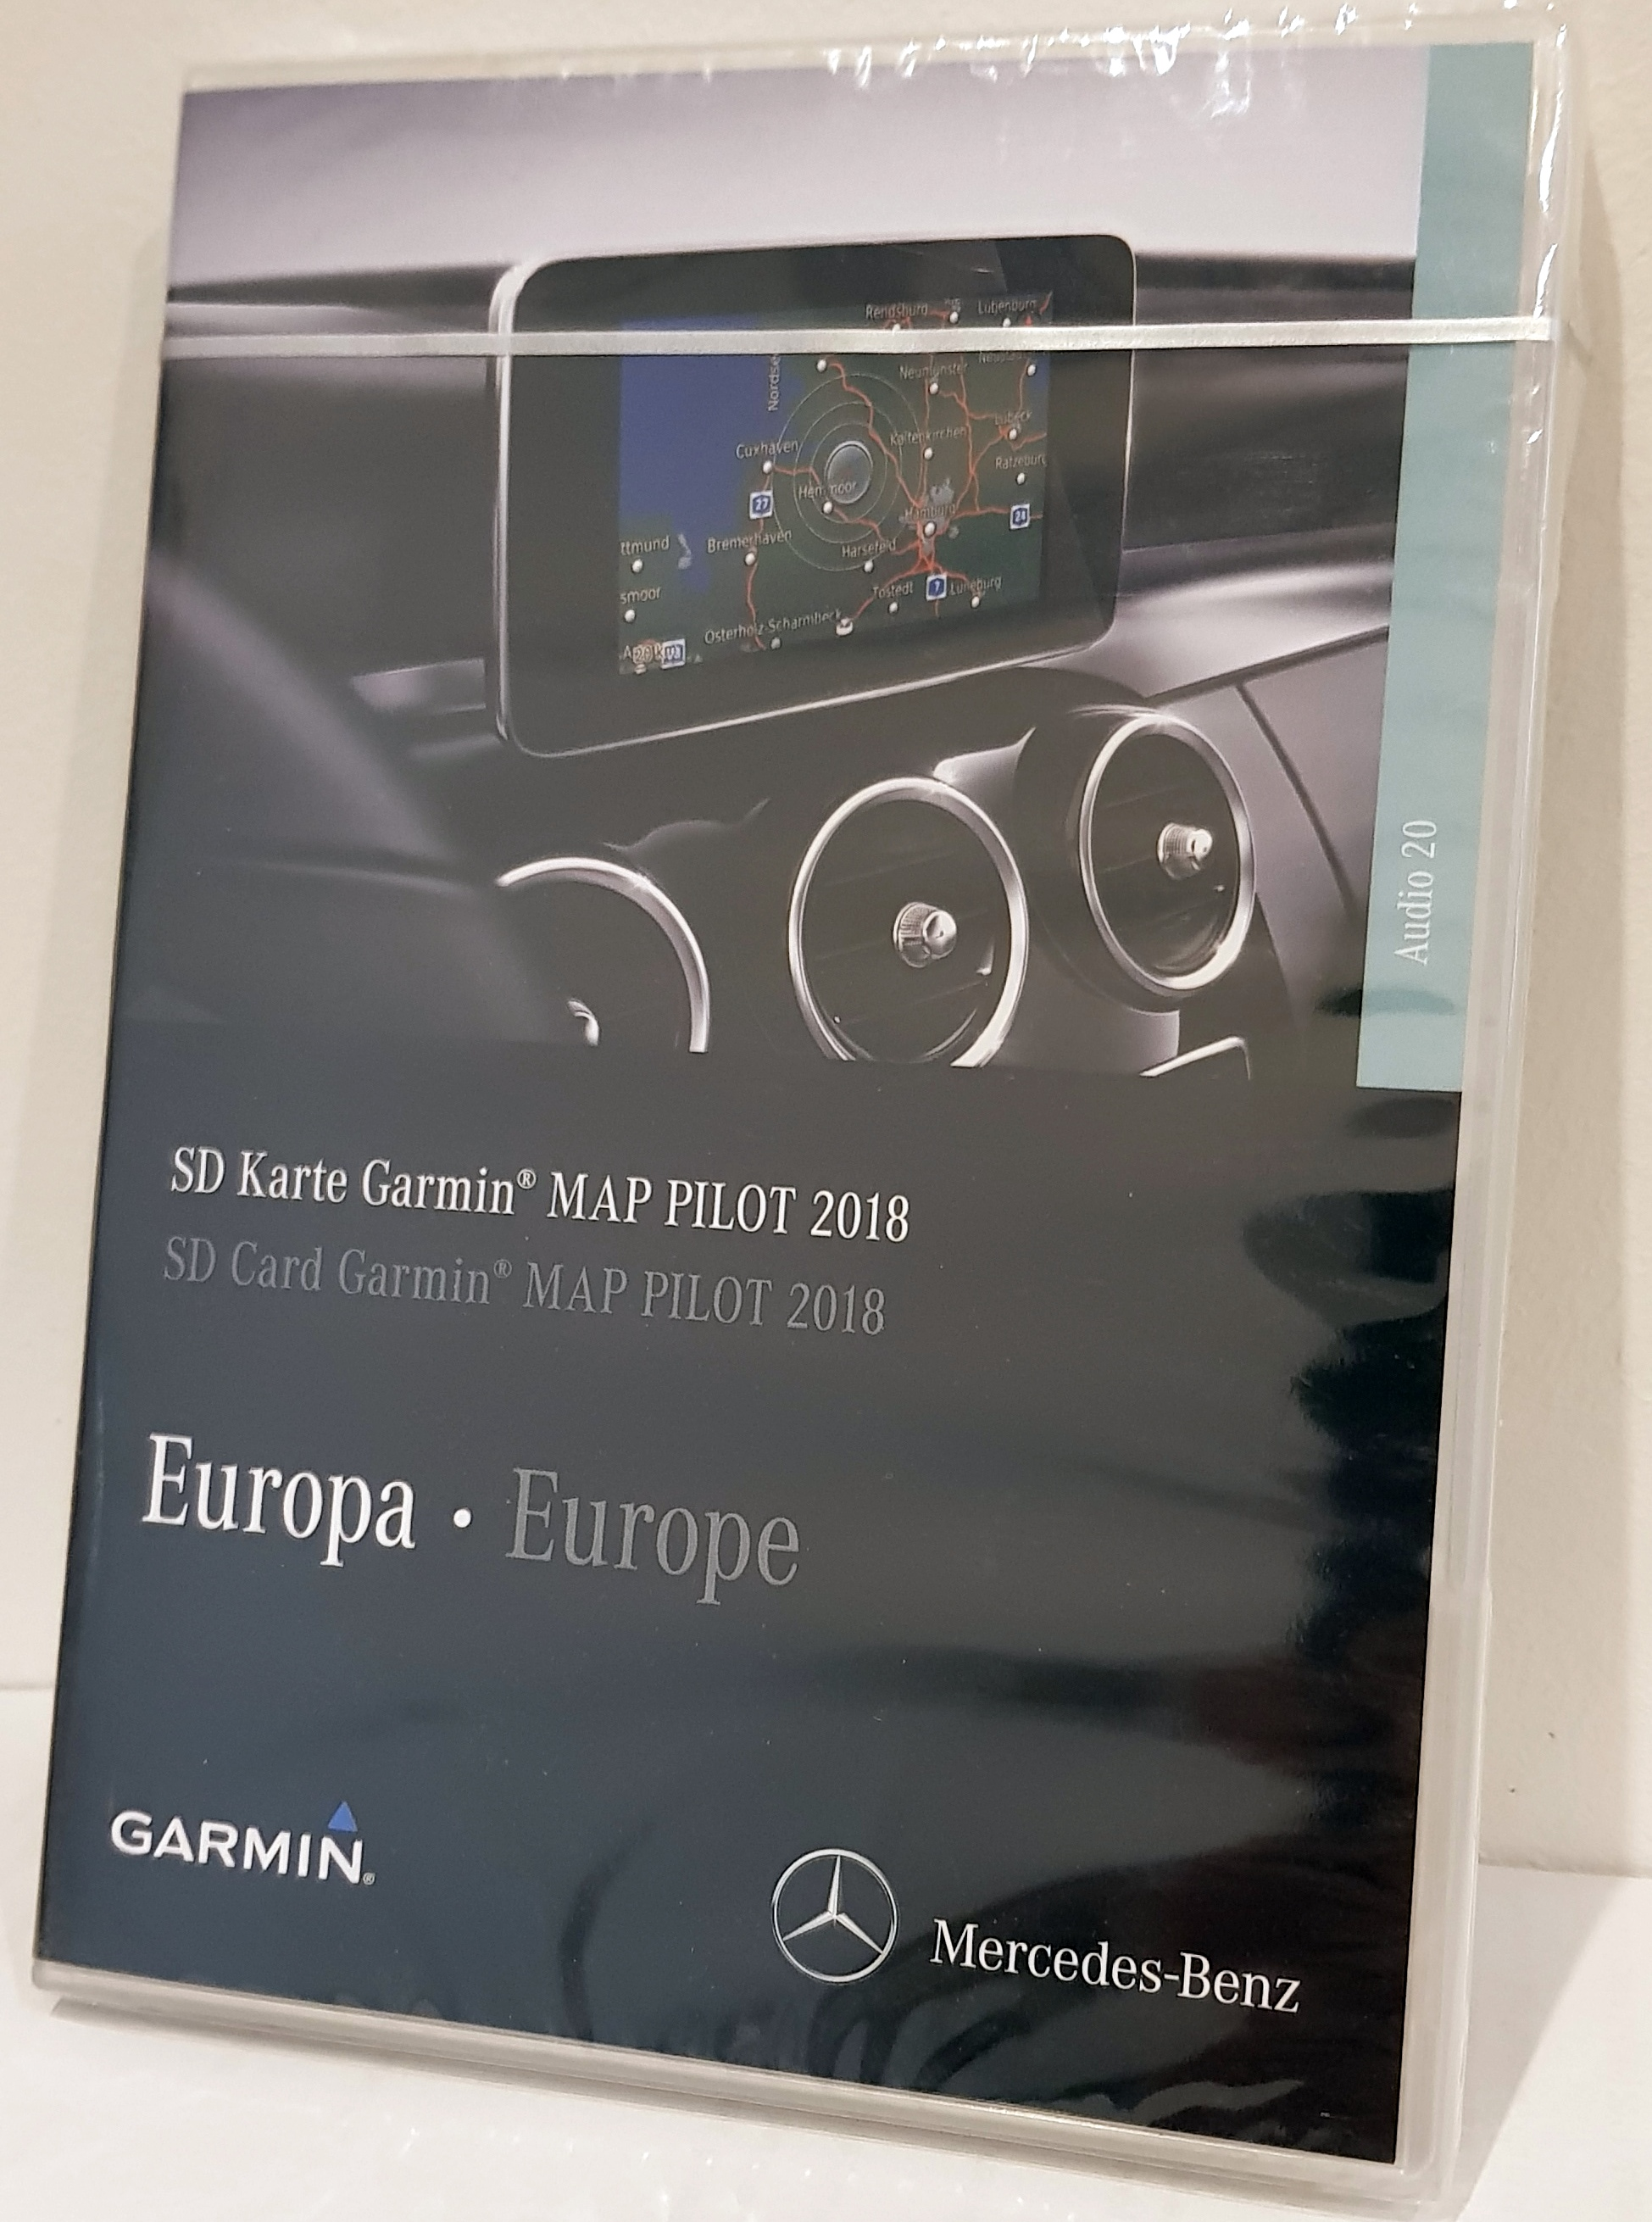 garmin map pilot mercedes benz a213 2018. Black Bedroom Furniture Sets. Home Design Ideas